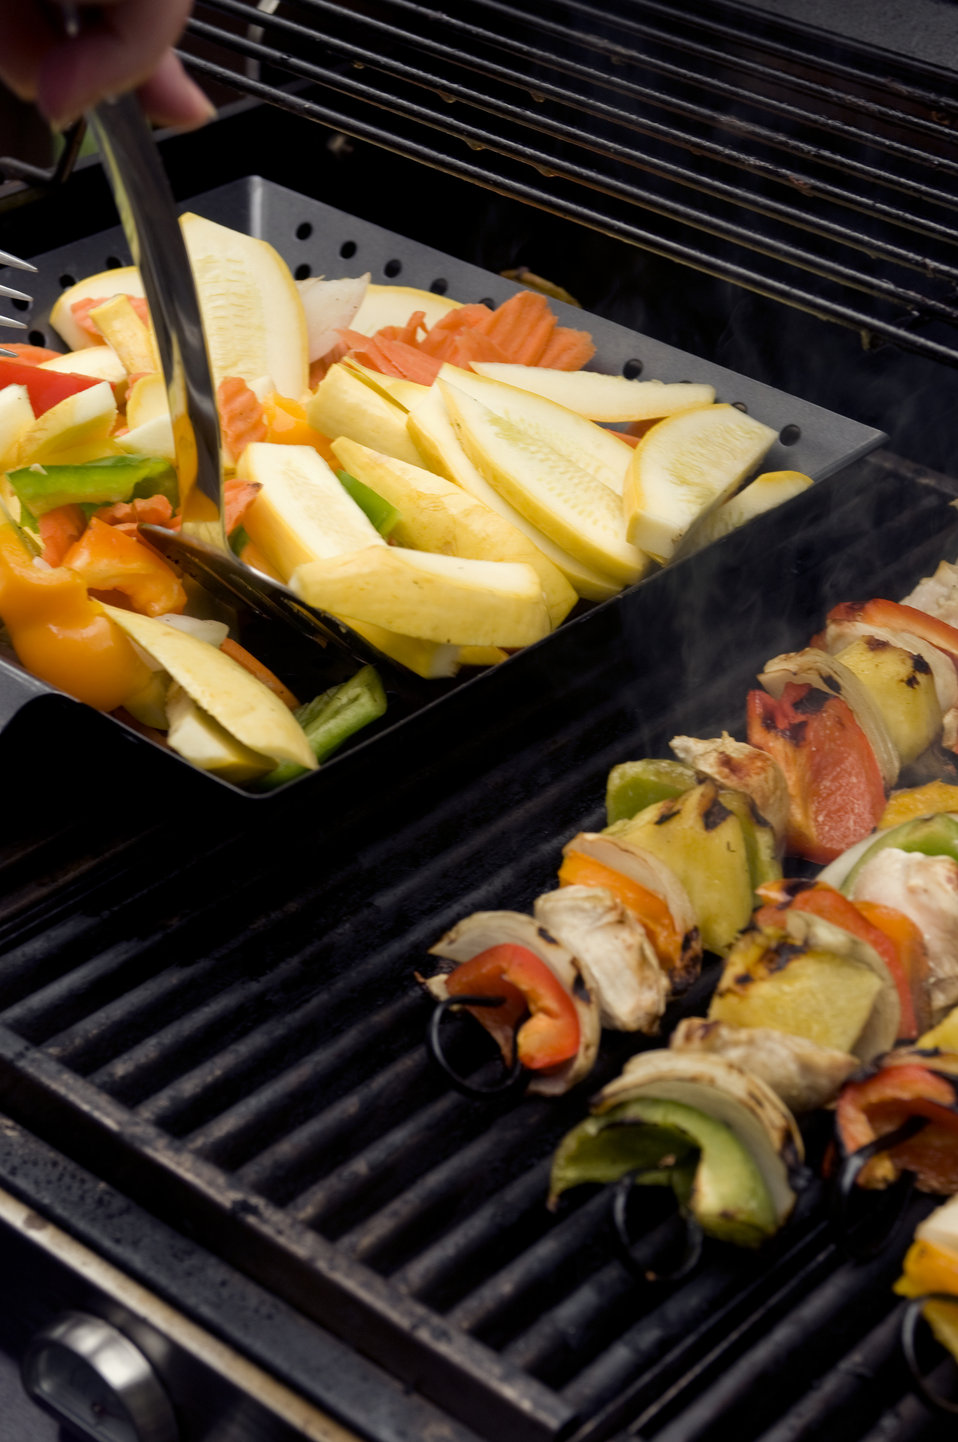 This image depicts freshly-prepared kabobs (Lt), which had been set atop an outdoor stainless steel gas grill, and were cooking. The skewers